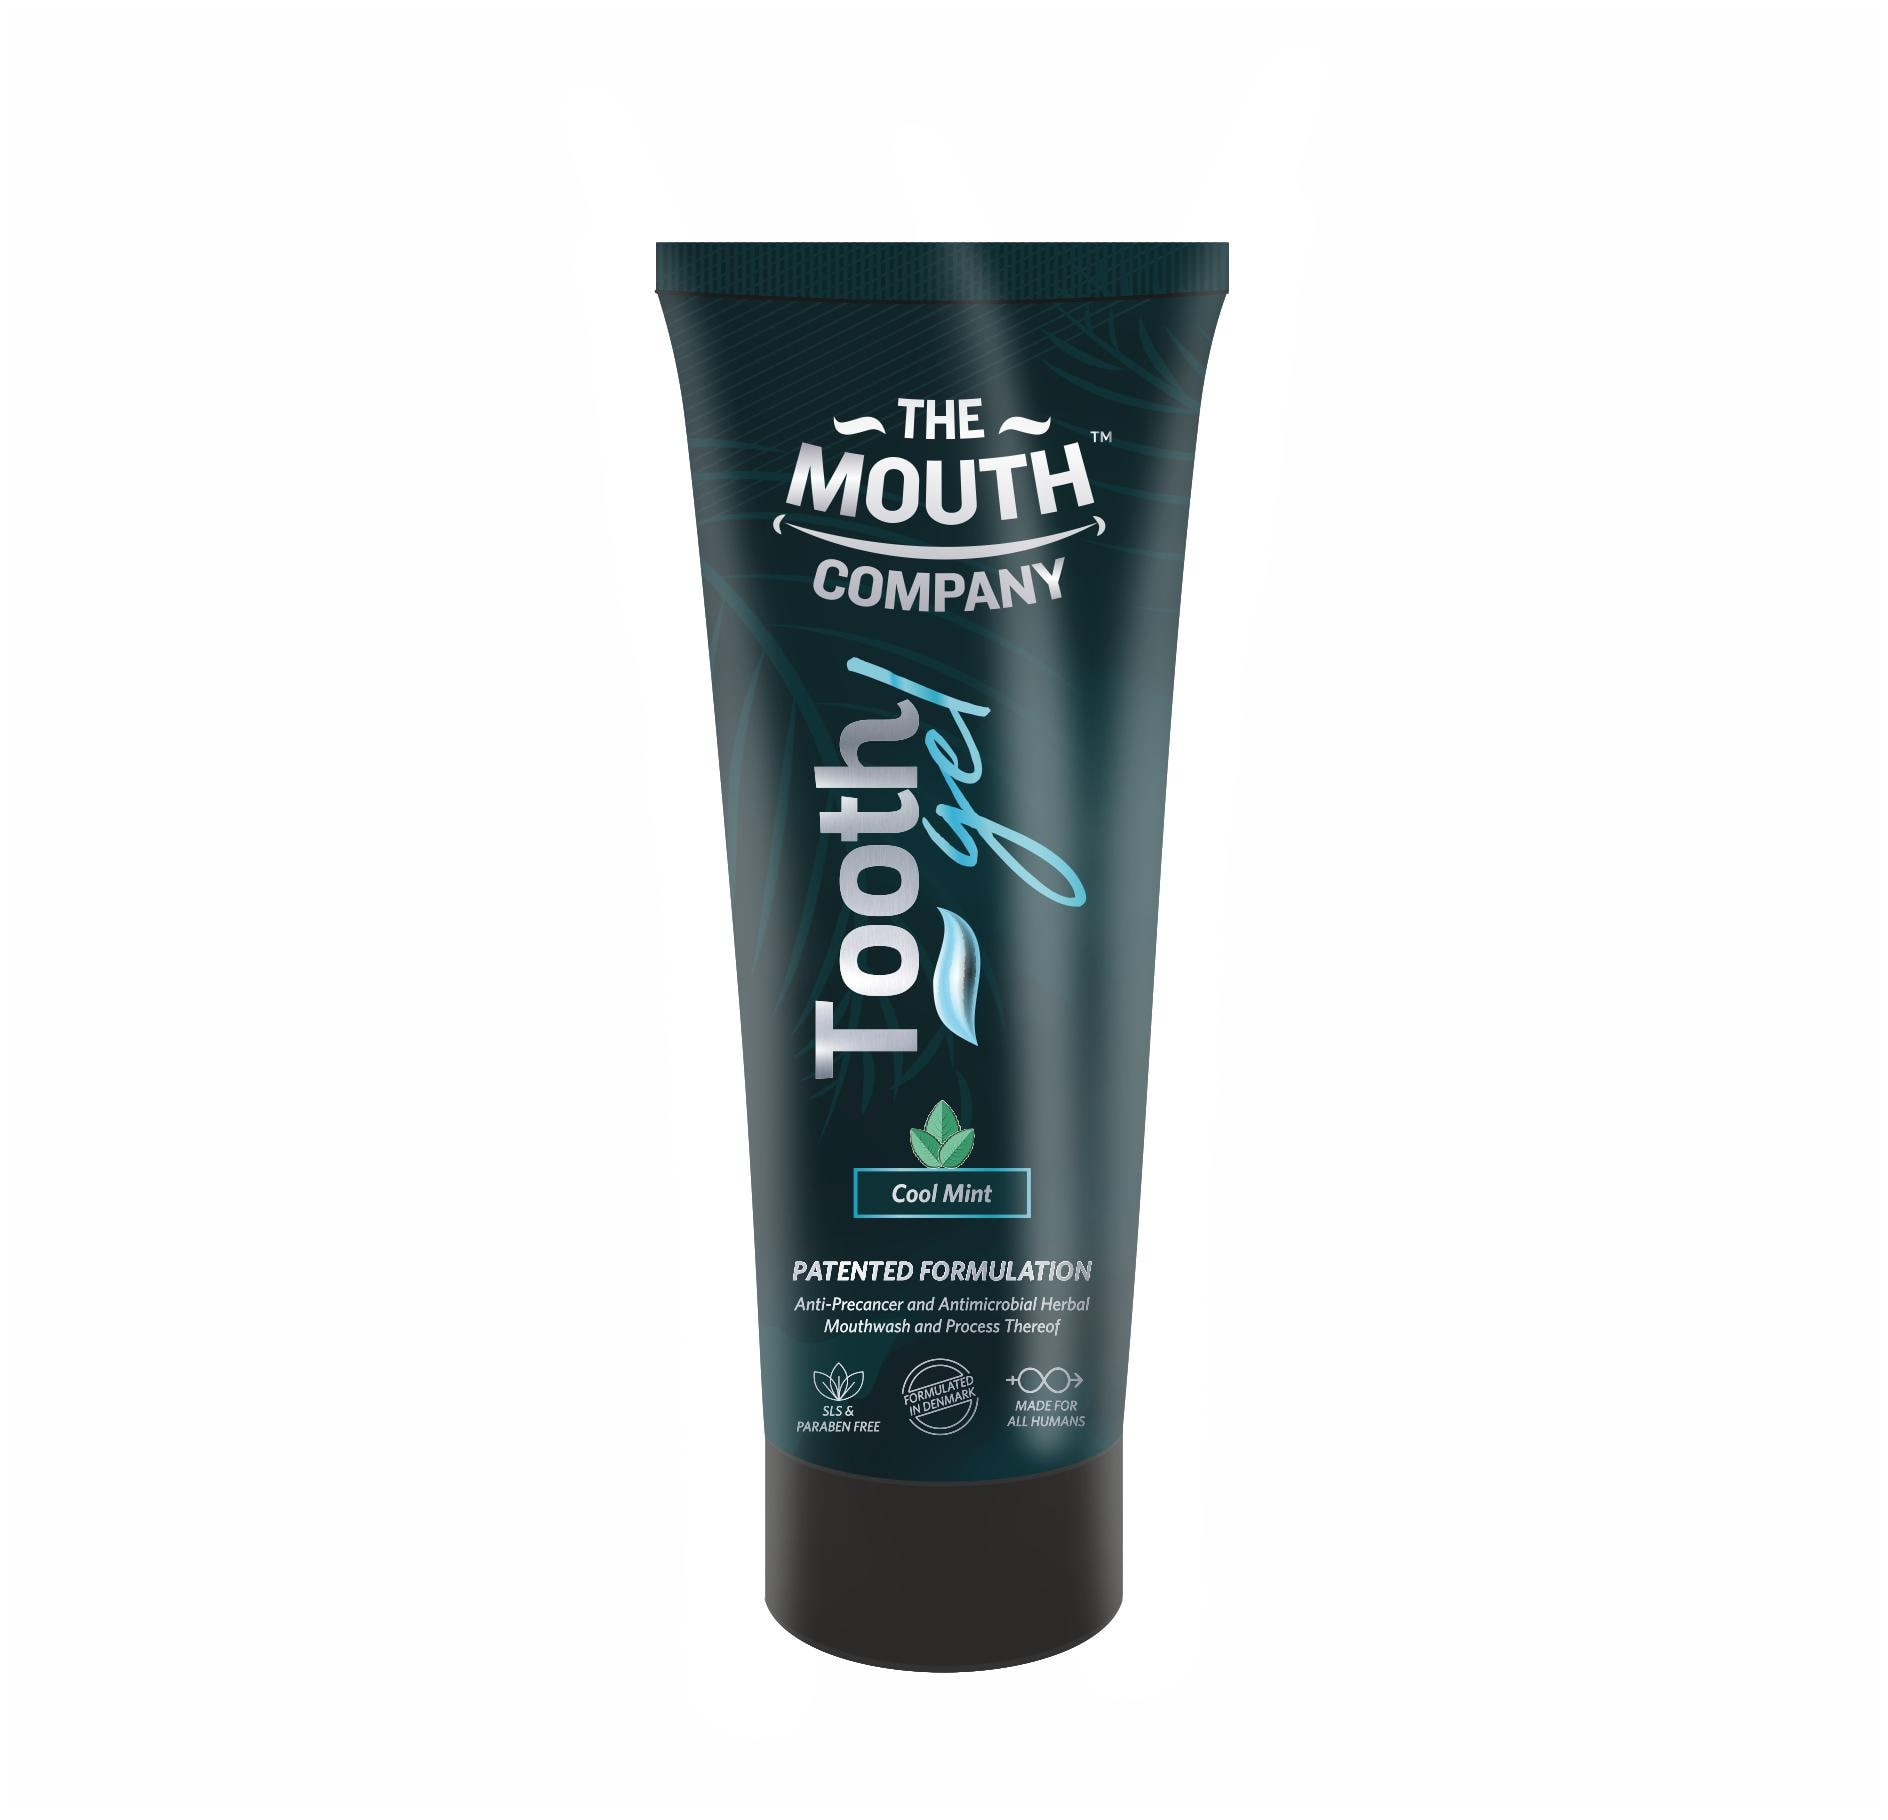 https://assetscdn1.paytm.com/images/catalog/product/F/FA/FASTHE-MOUTH-COTHE-1173749527039D3/1623257784987_0..jpg